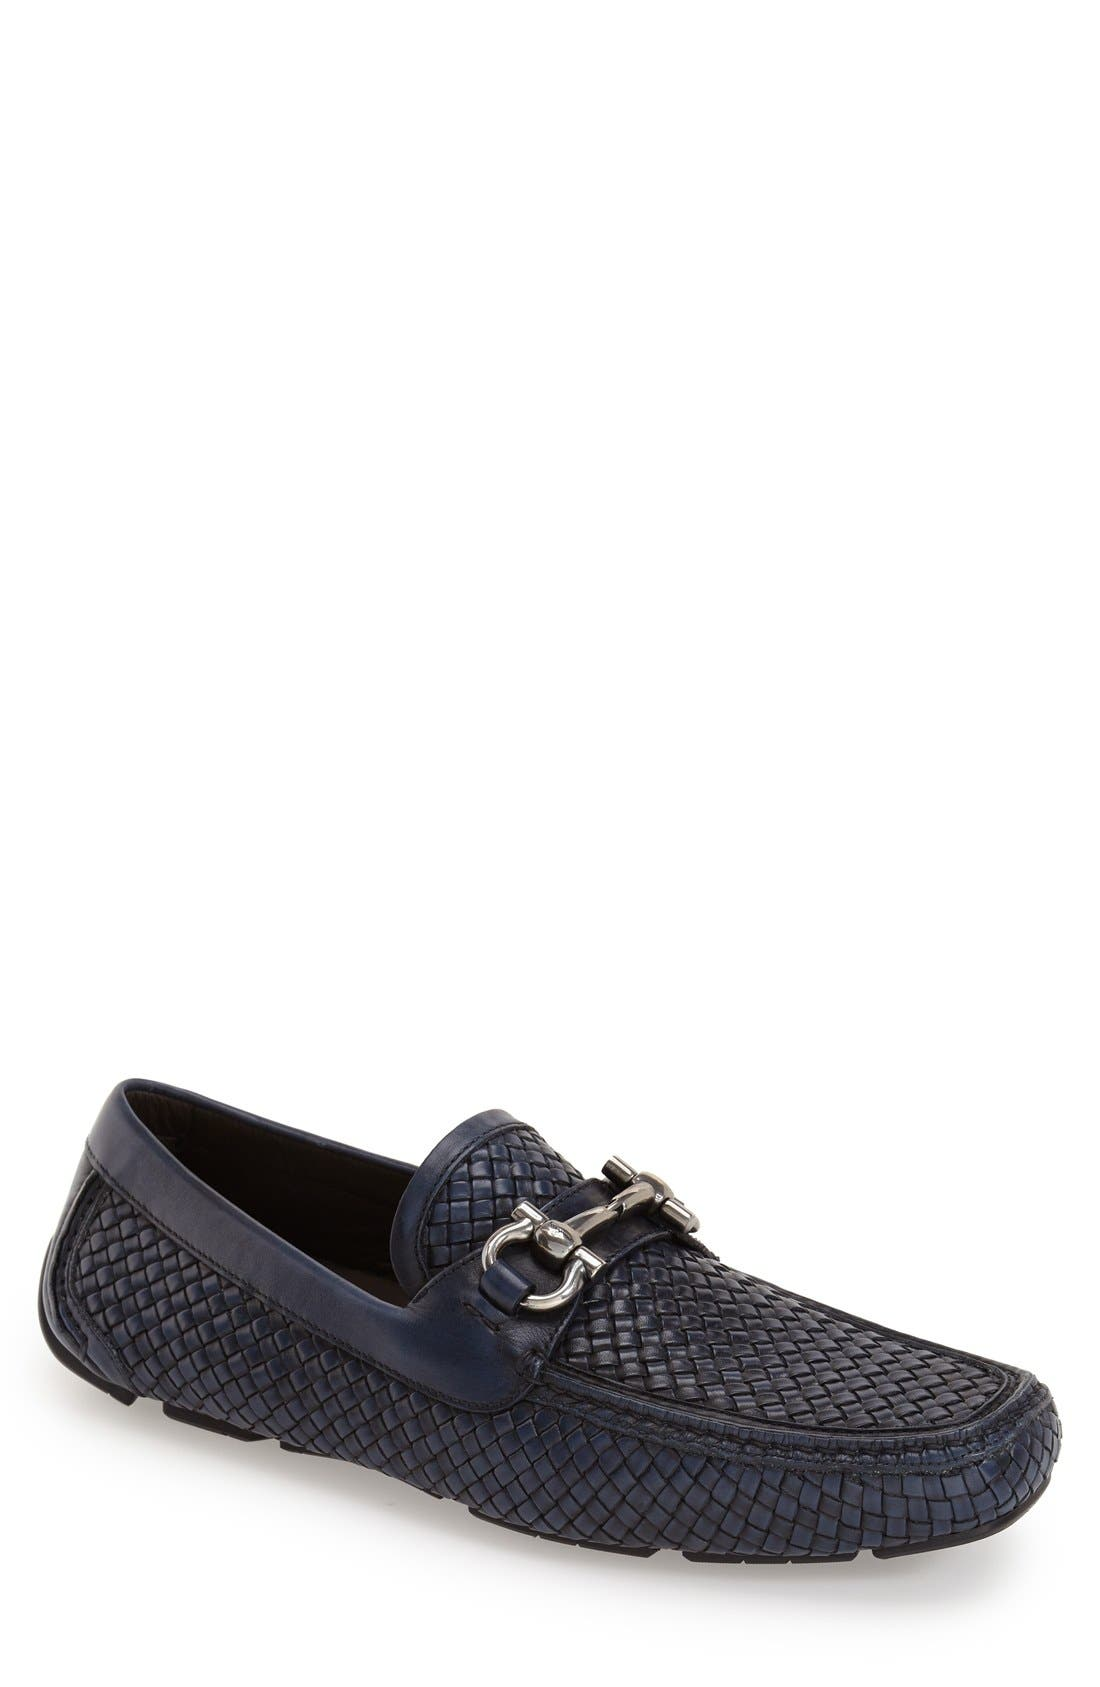 Alternate Image 1 Selected - Salvatore Ferragamo 'Parigi' Woven Bit Loafer (Men)